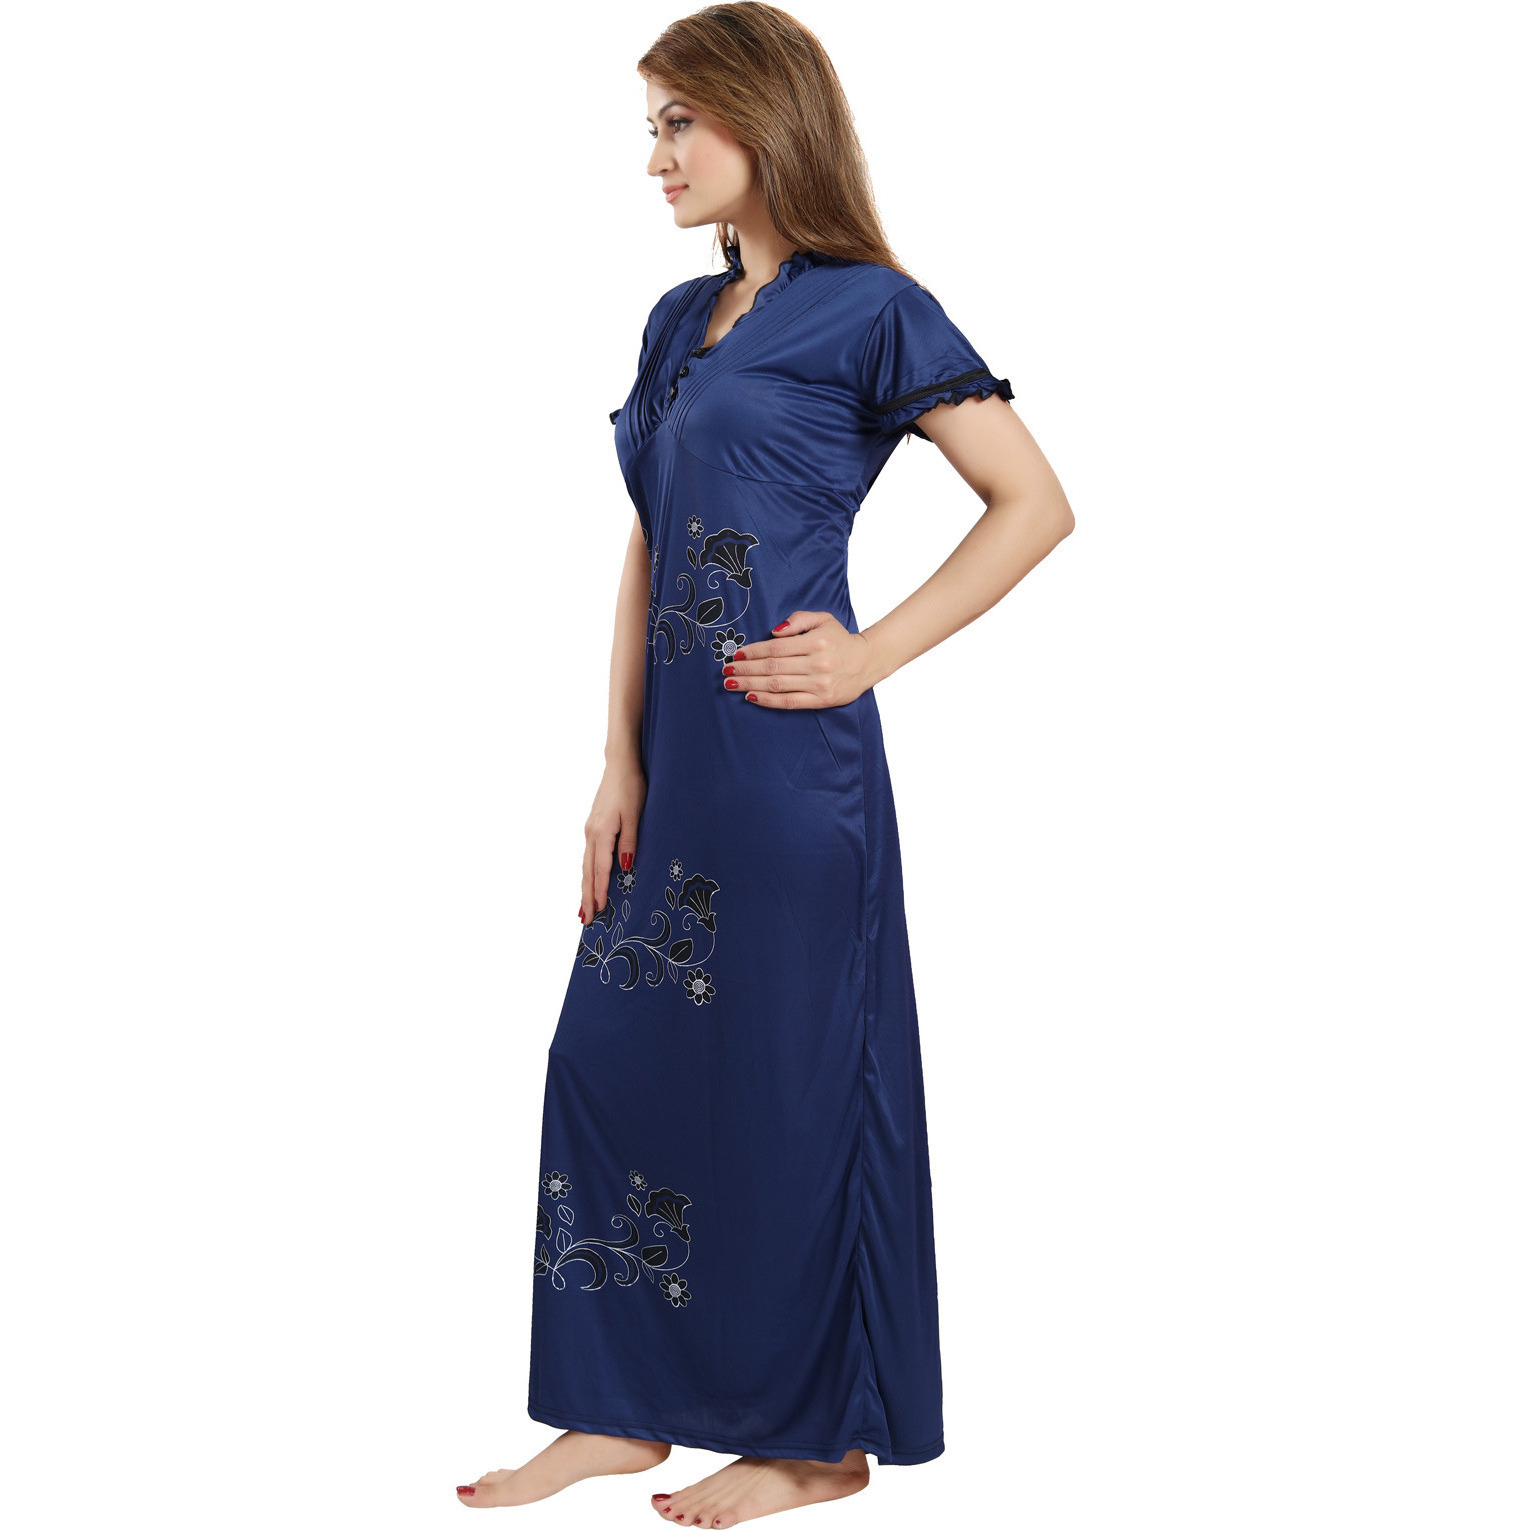 Be You Serena Satin Brown-Blue Women Nightgowns Combo Pack of 2